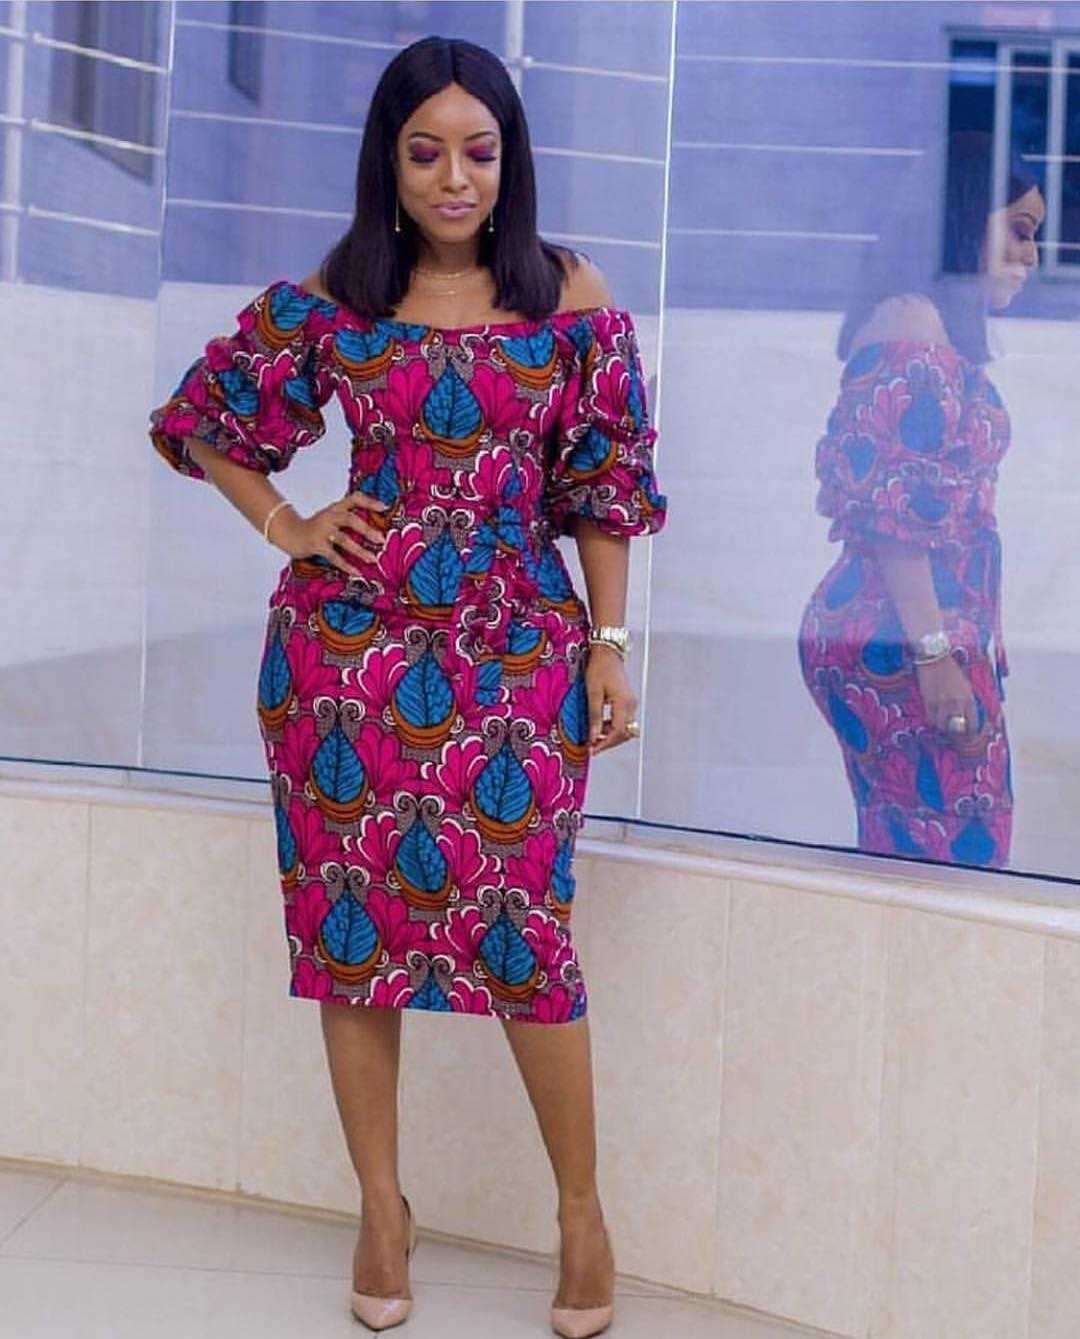 joselyn-dumas-ankara-dress-miss-malaika-2017